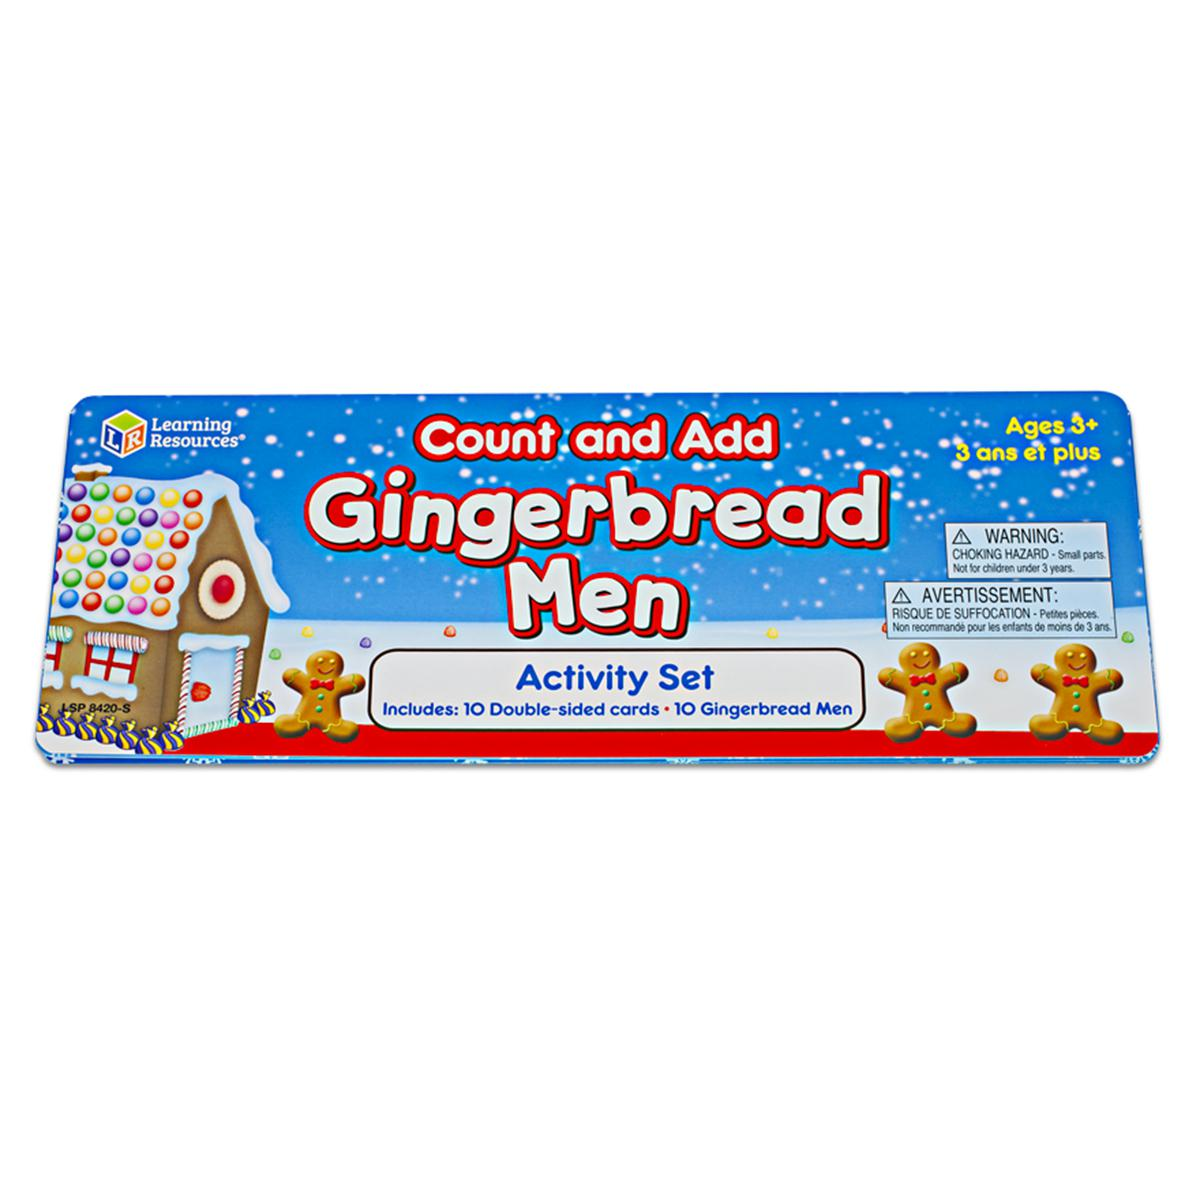 Count and Add: Gingerbread Men